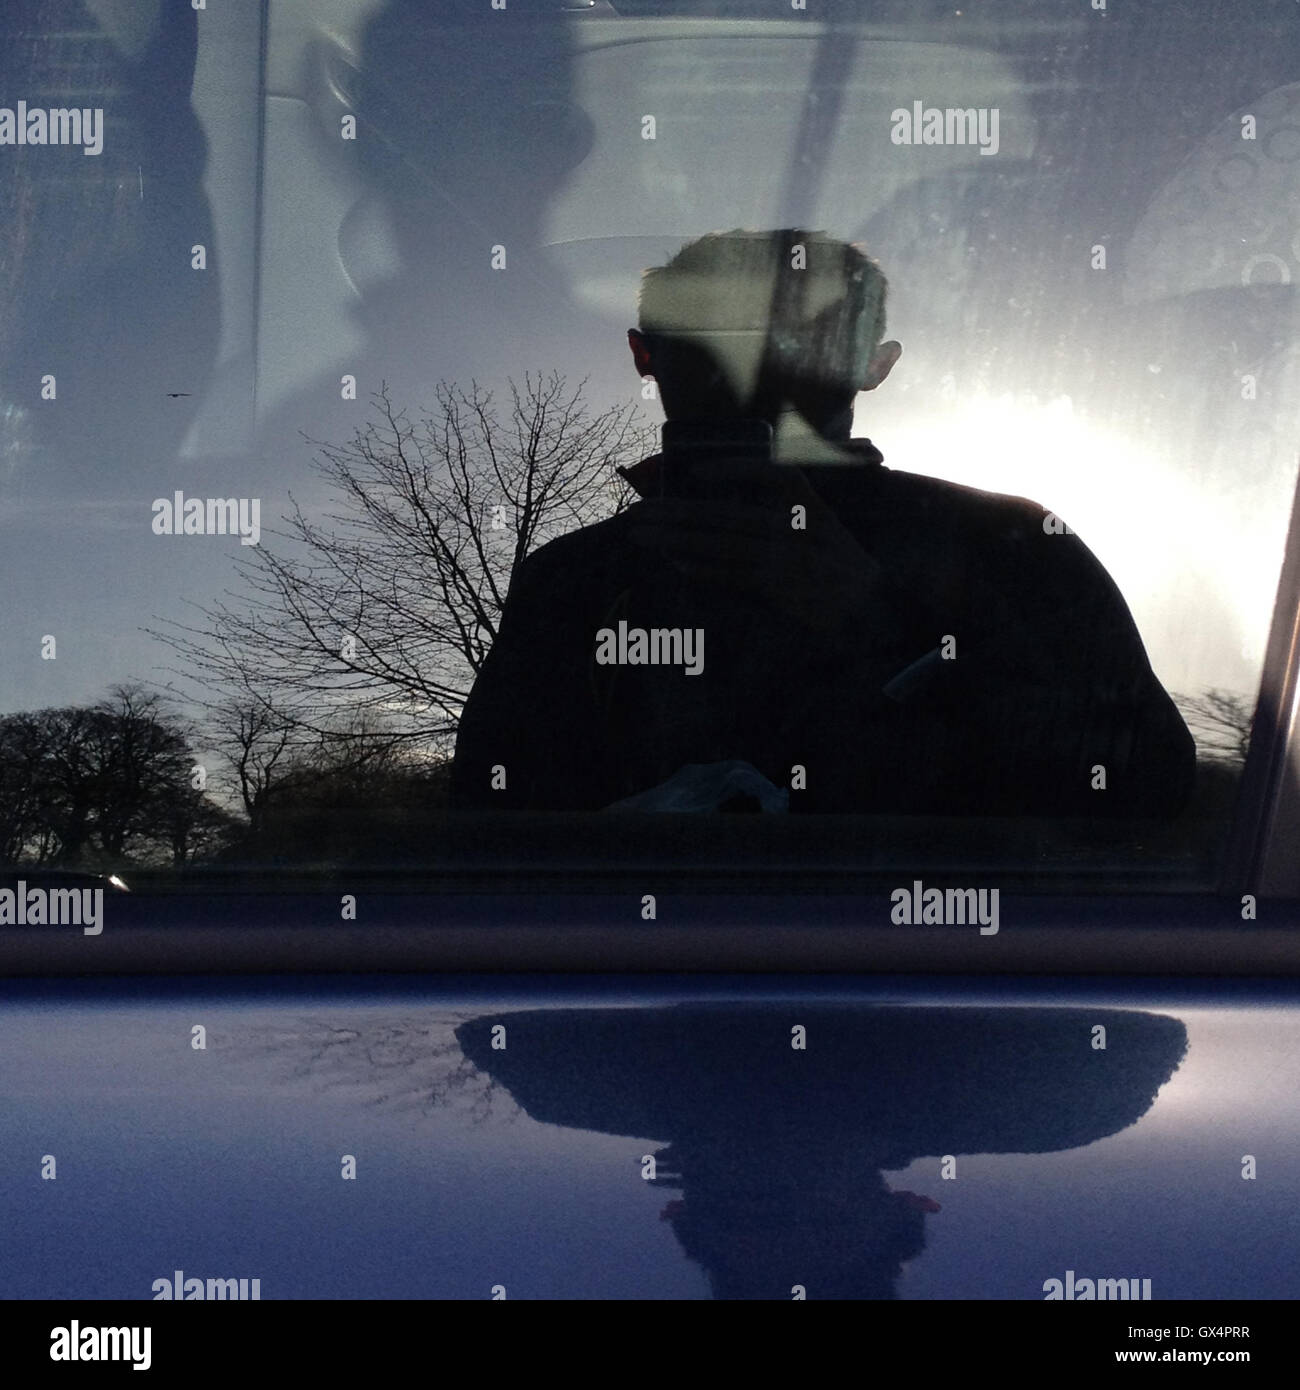 Reflection in side window of car, in Glasgow, Scotland. - Stock Image